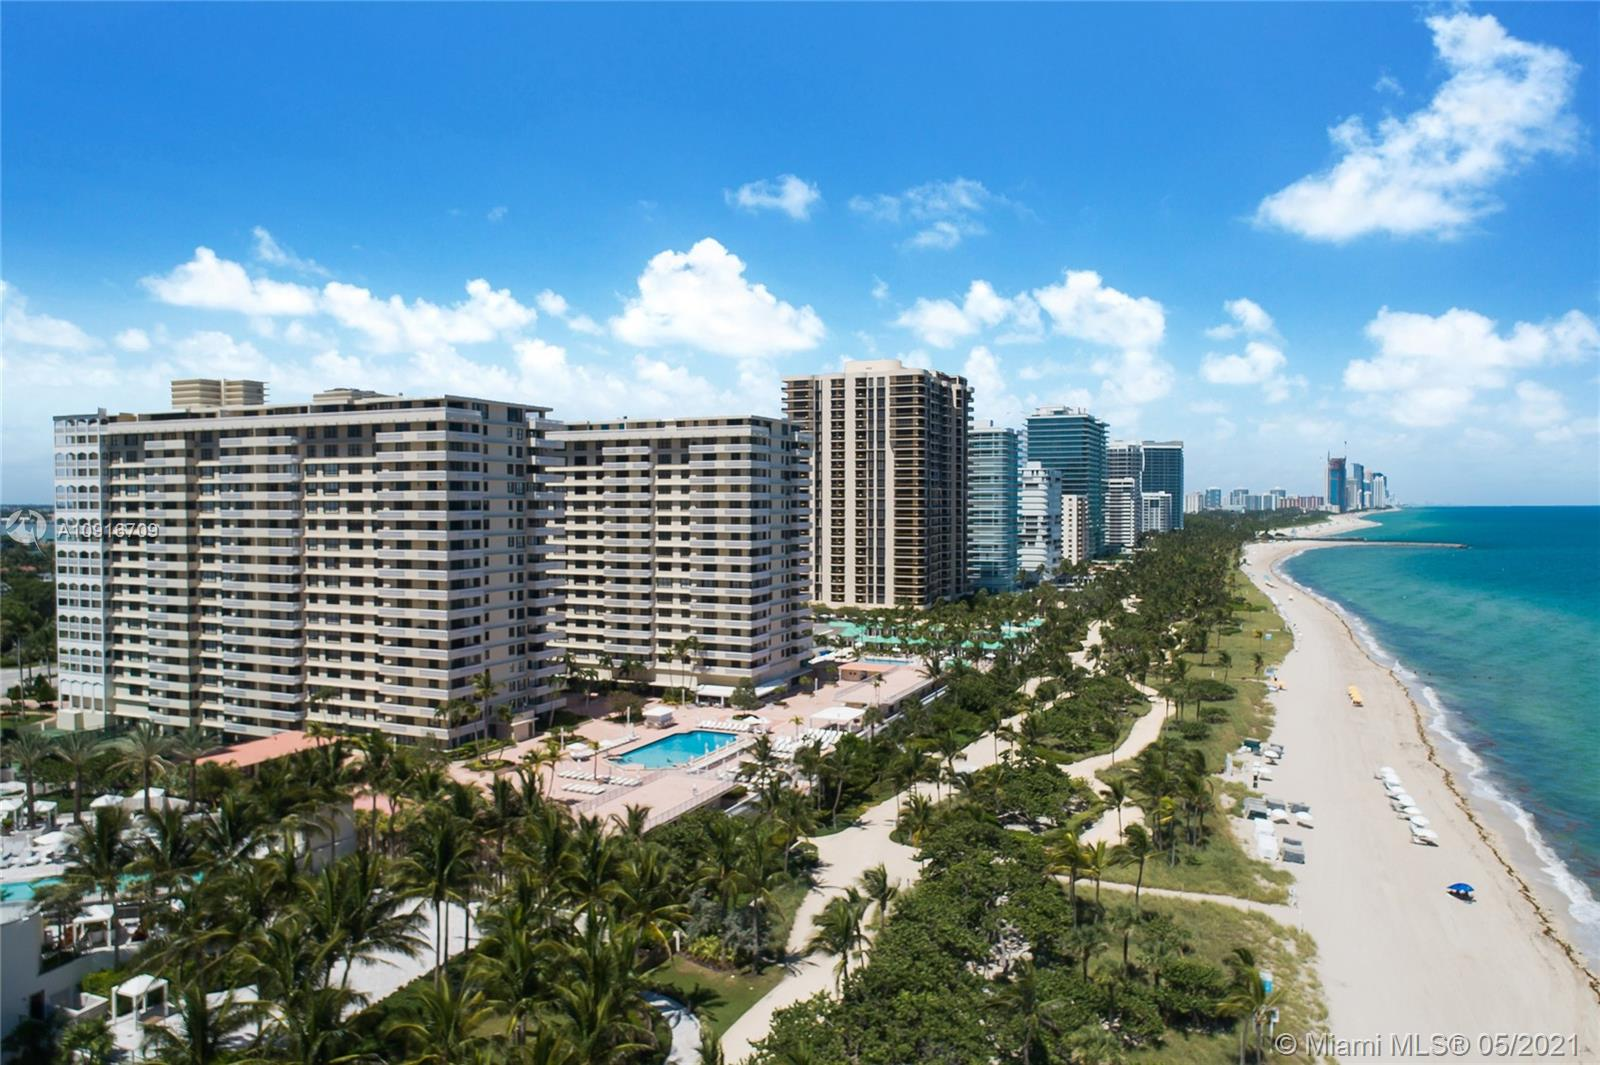 Photo of 9801 Collins Ave #11B Direct Ocean, Bal Harbour, Florida, 33154 - The direct ocean views